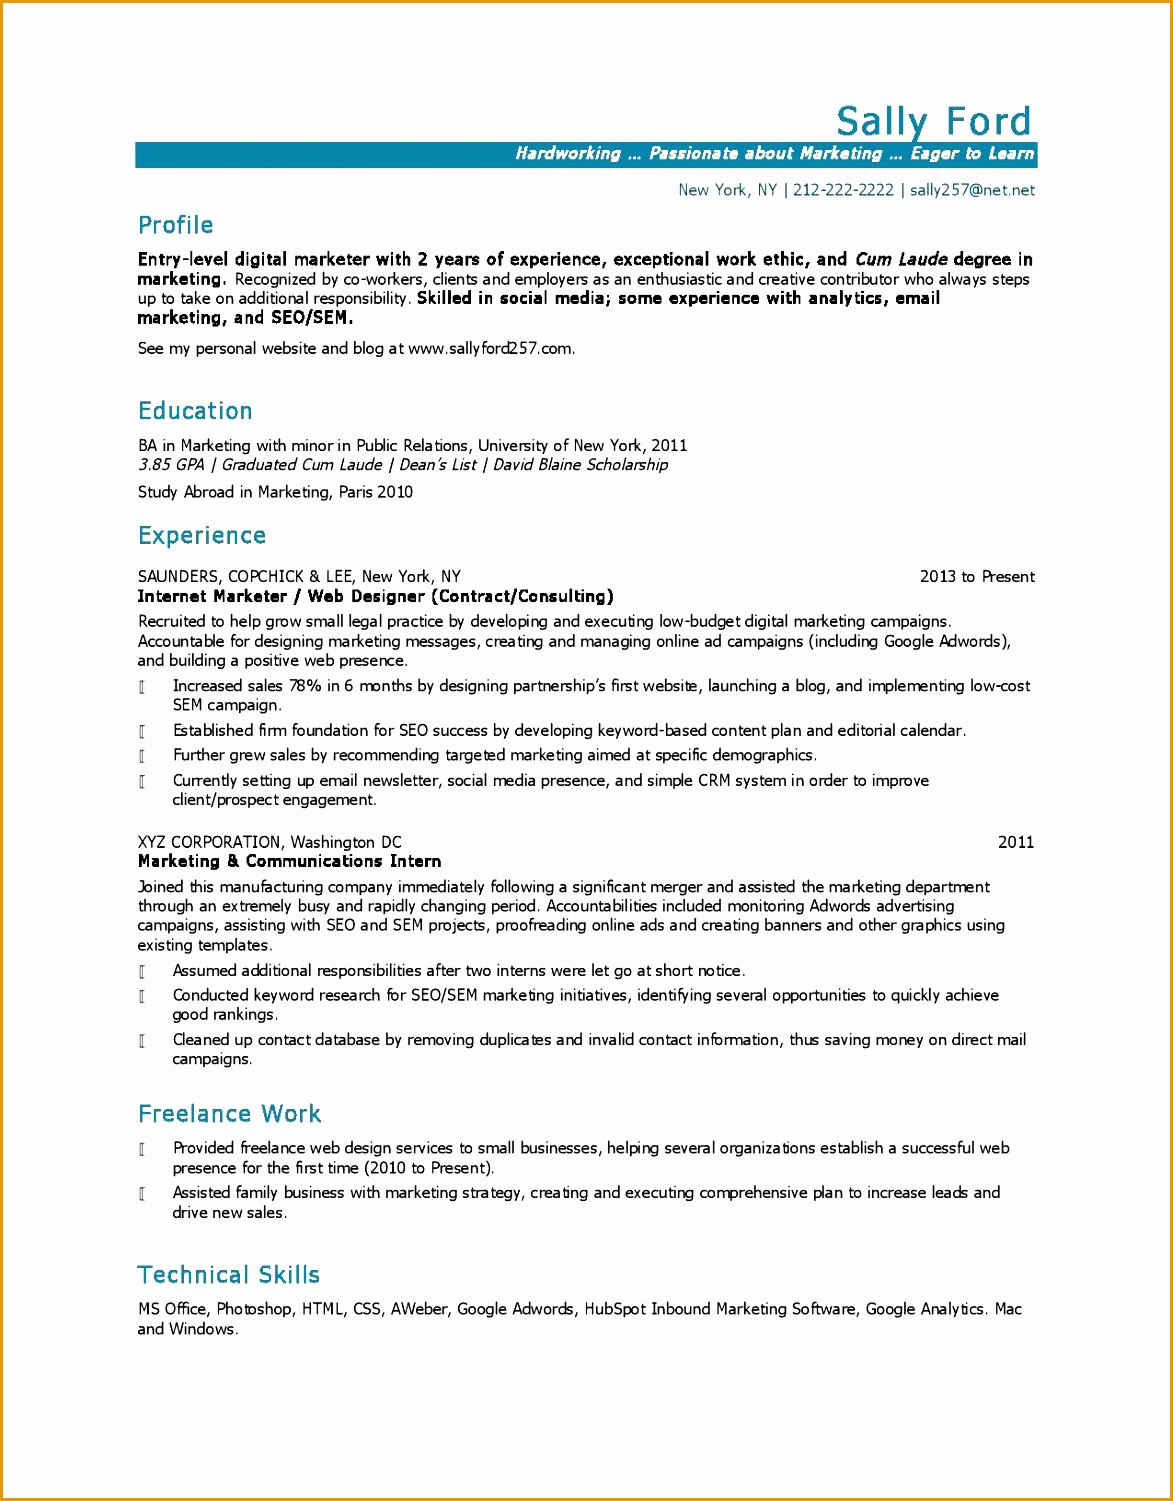 Entry Level Marketing resume sample15011173